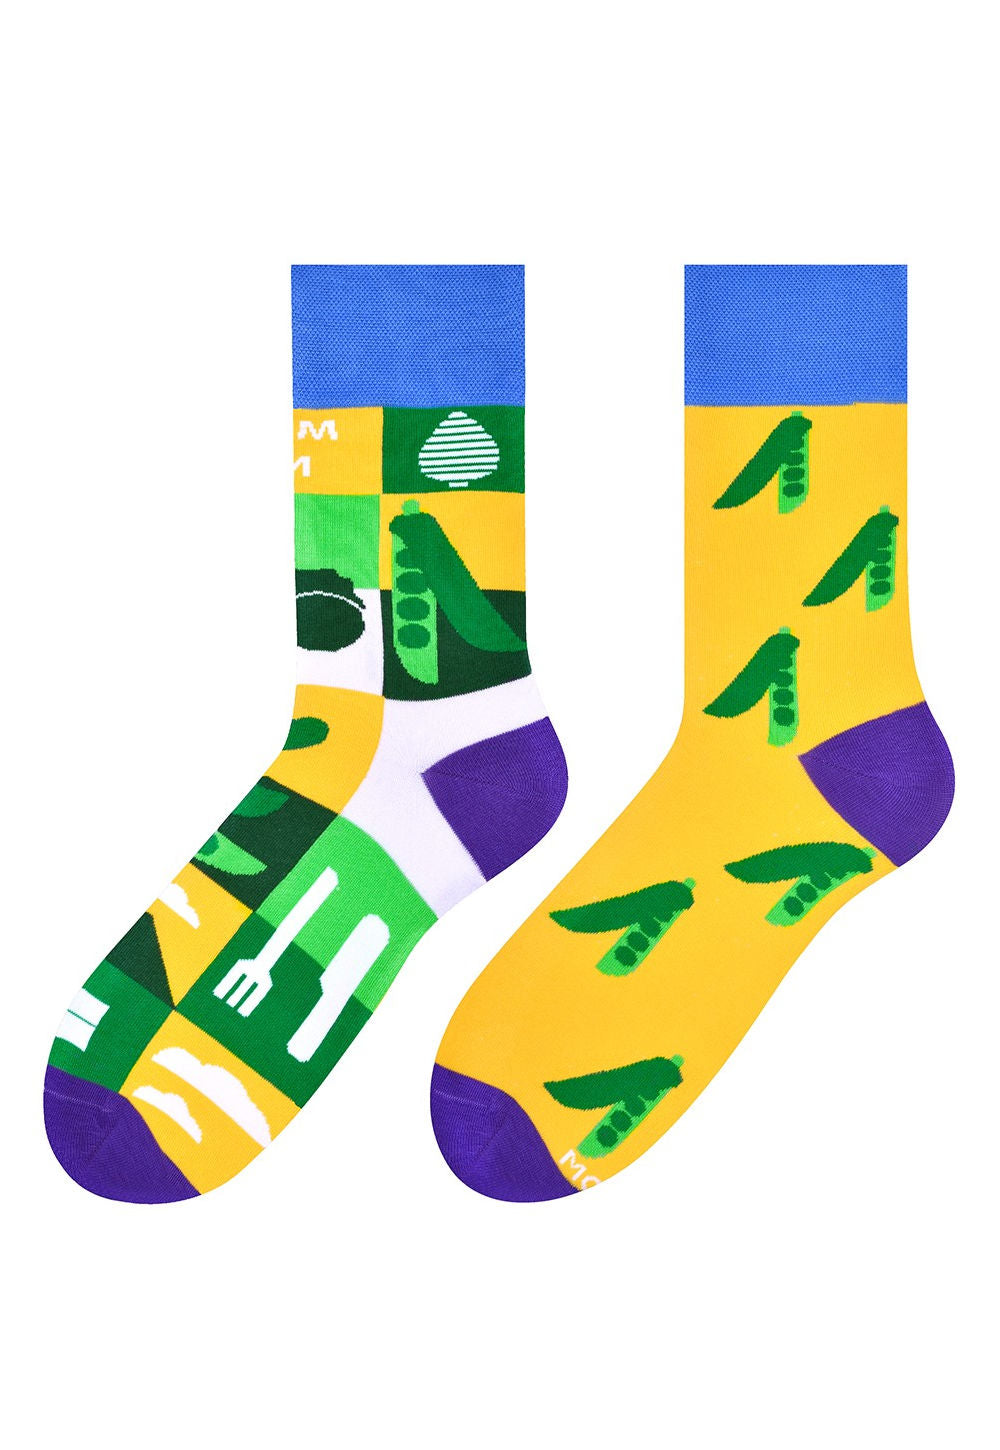 Peas & Farm Odd Patterned Socks in Yellow by More